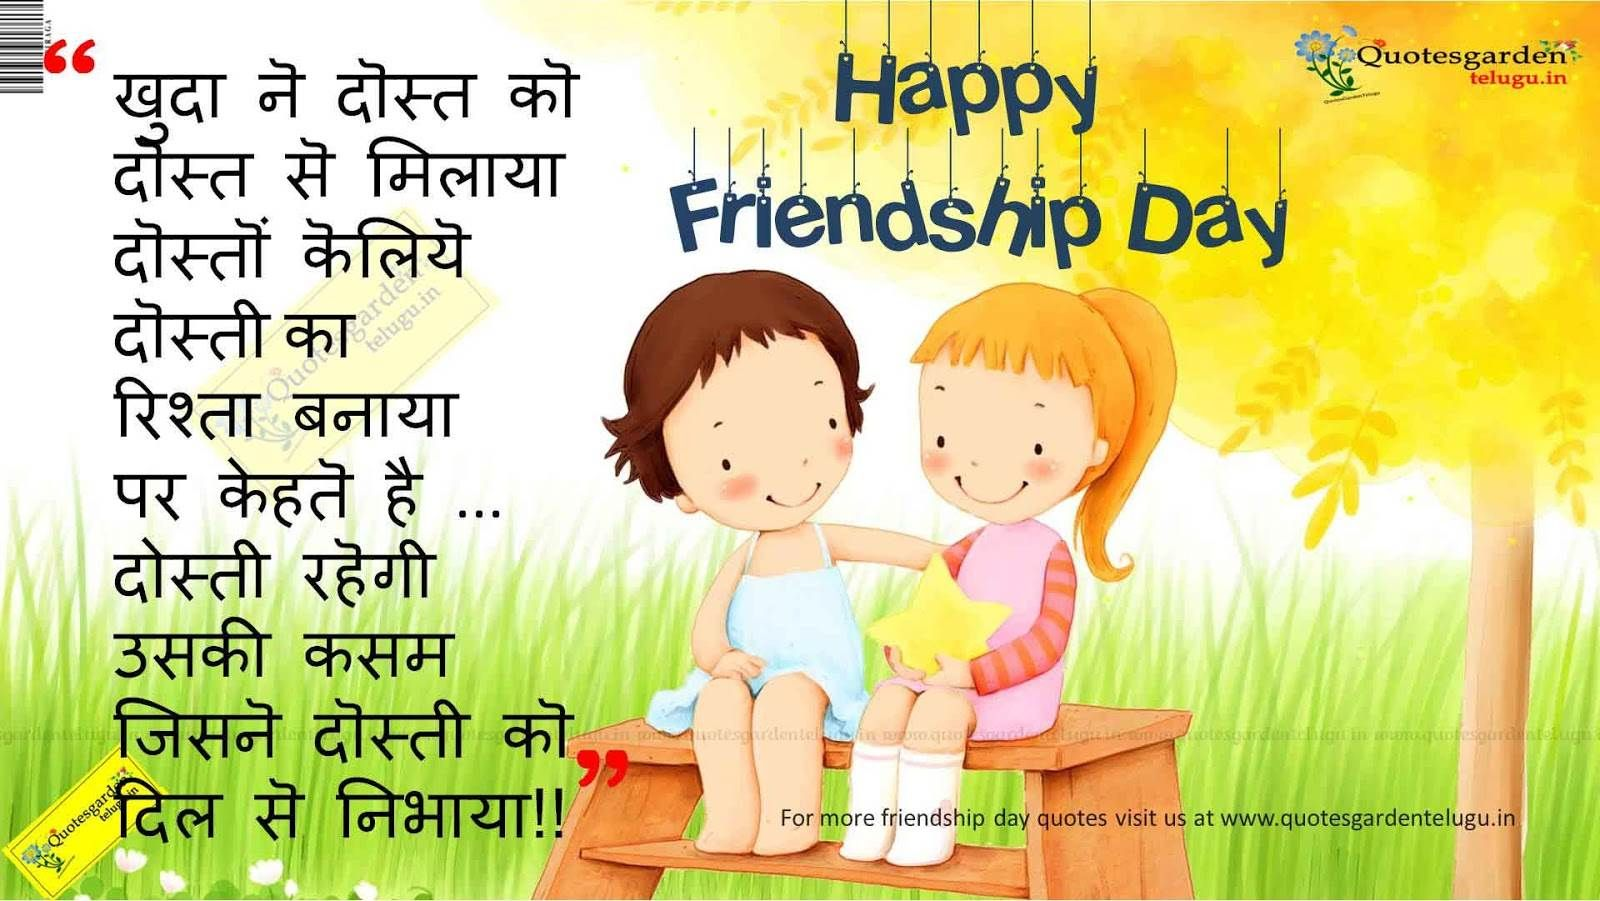 Beautiful Friendship Day Greetings Designs And Quotes August 636600